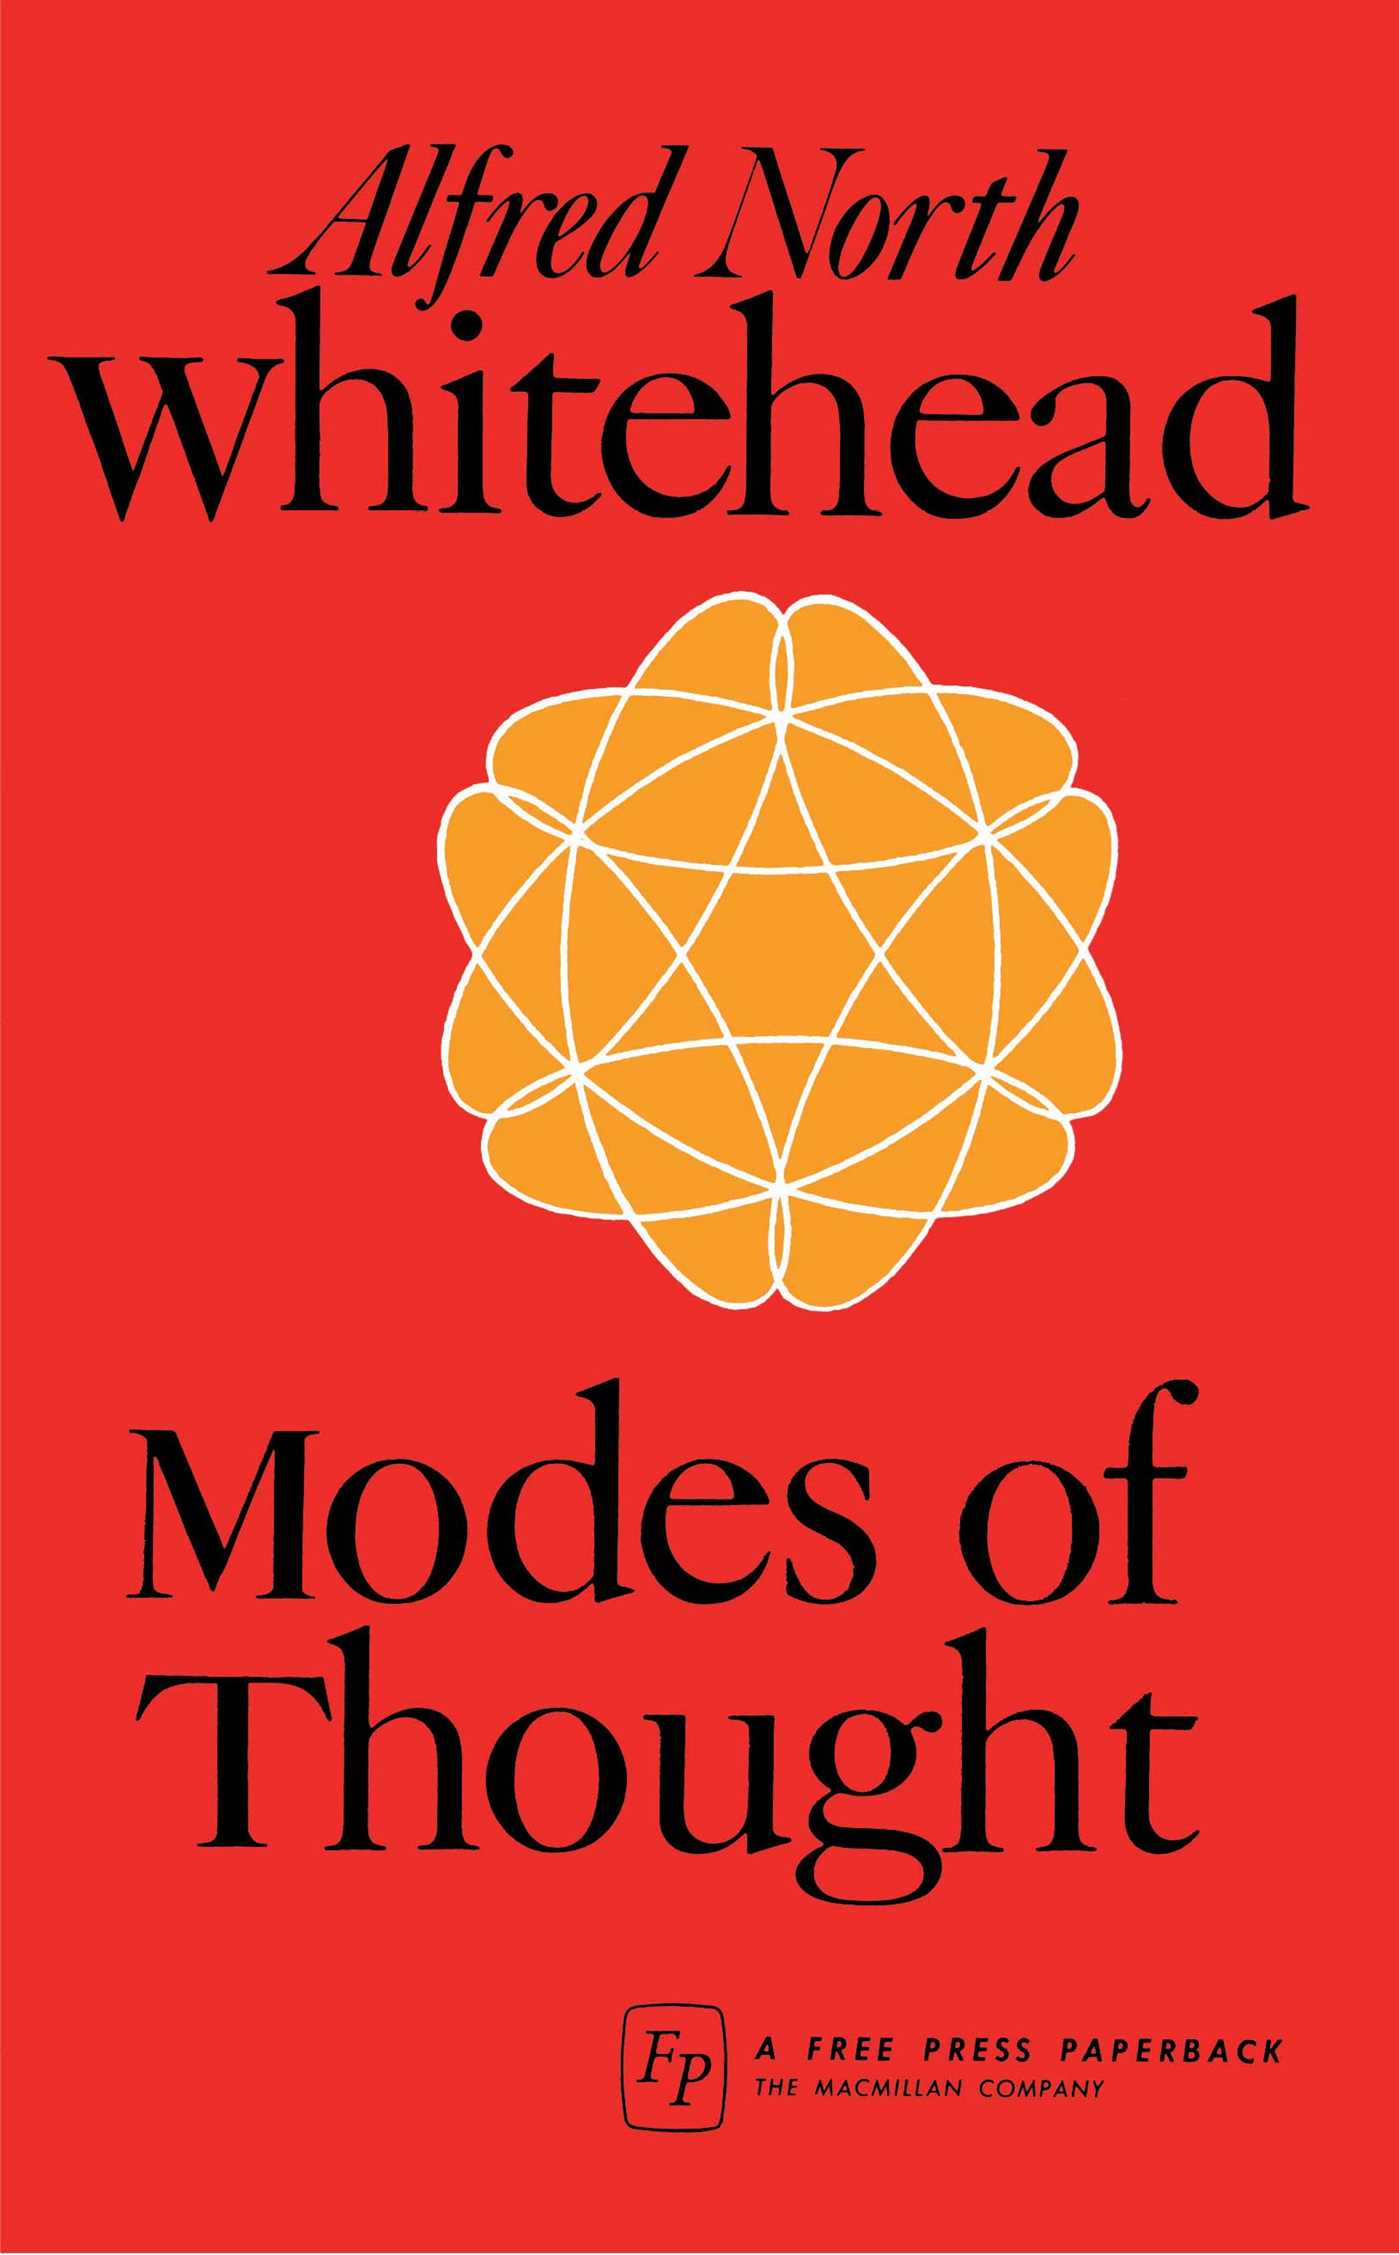 Modes-of-thought-9780029352106_hr